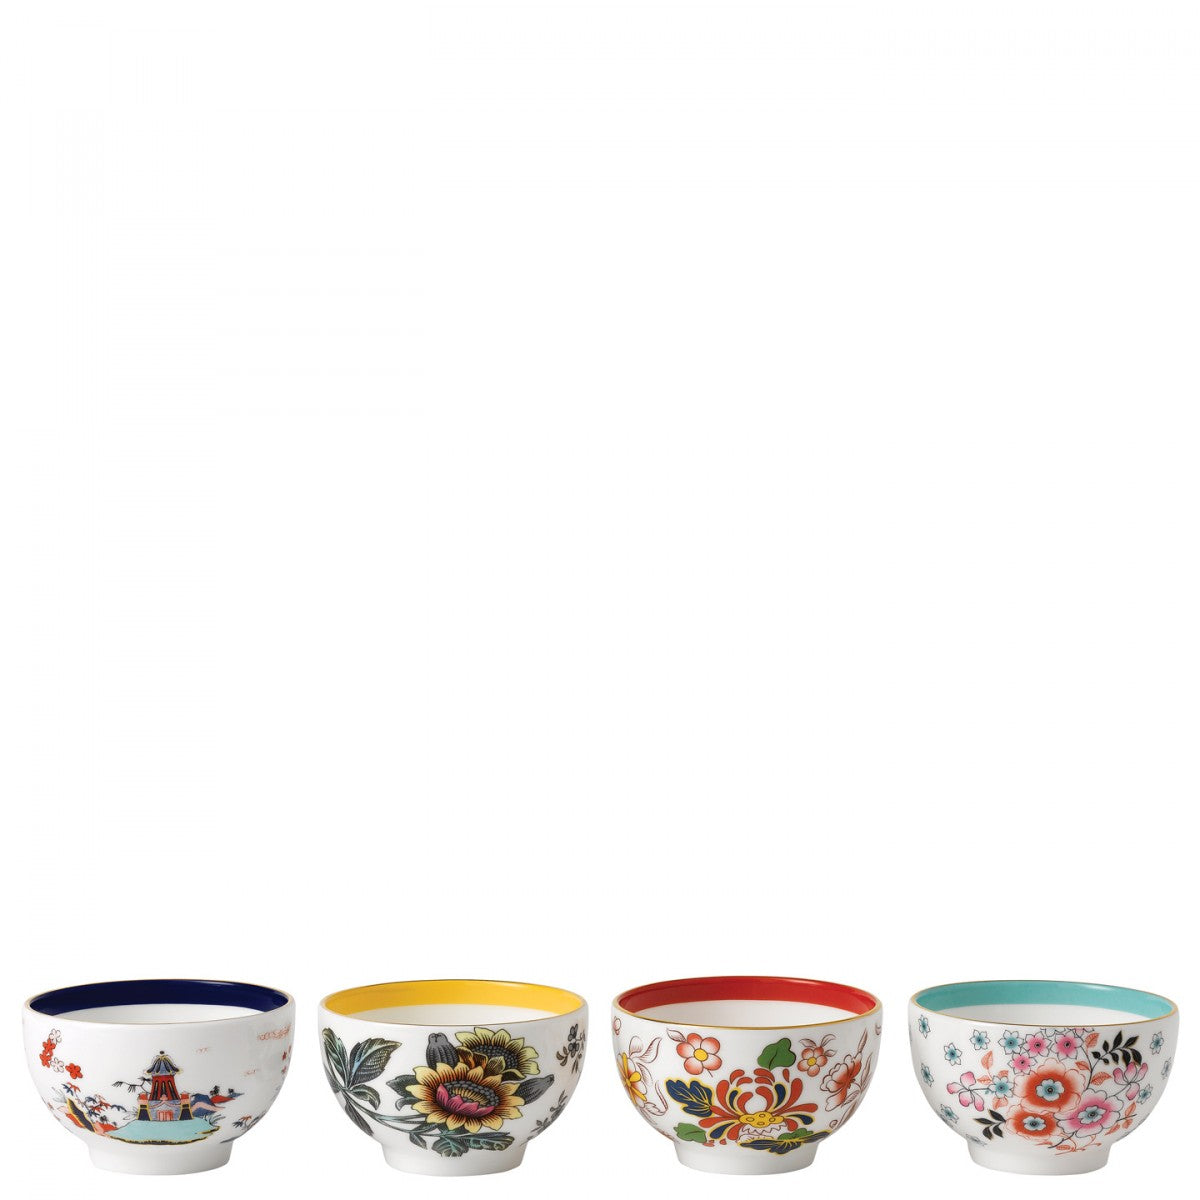 Wonderlust Tea Bowls (Set Of 4)